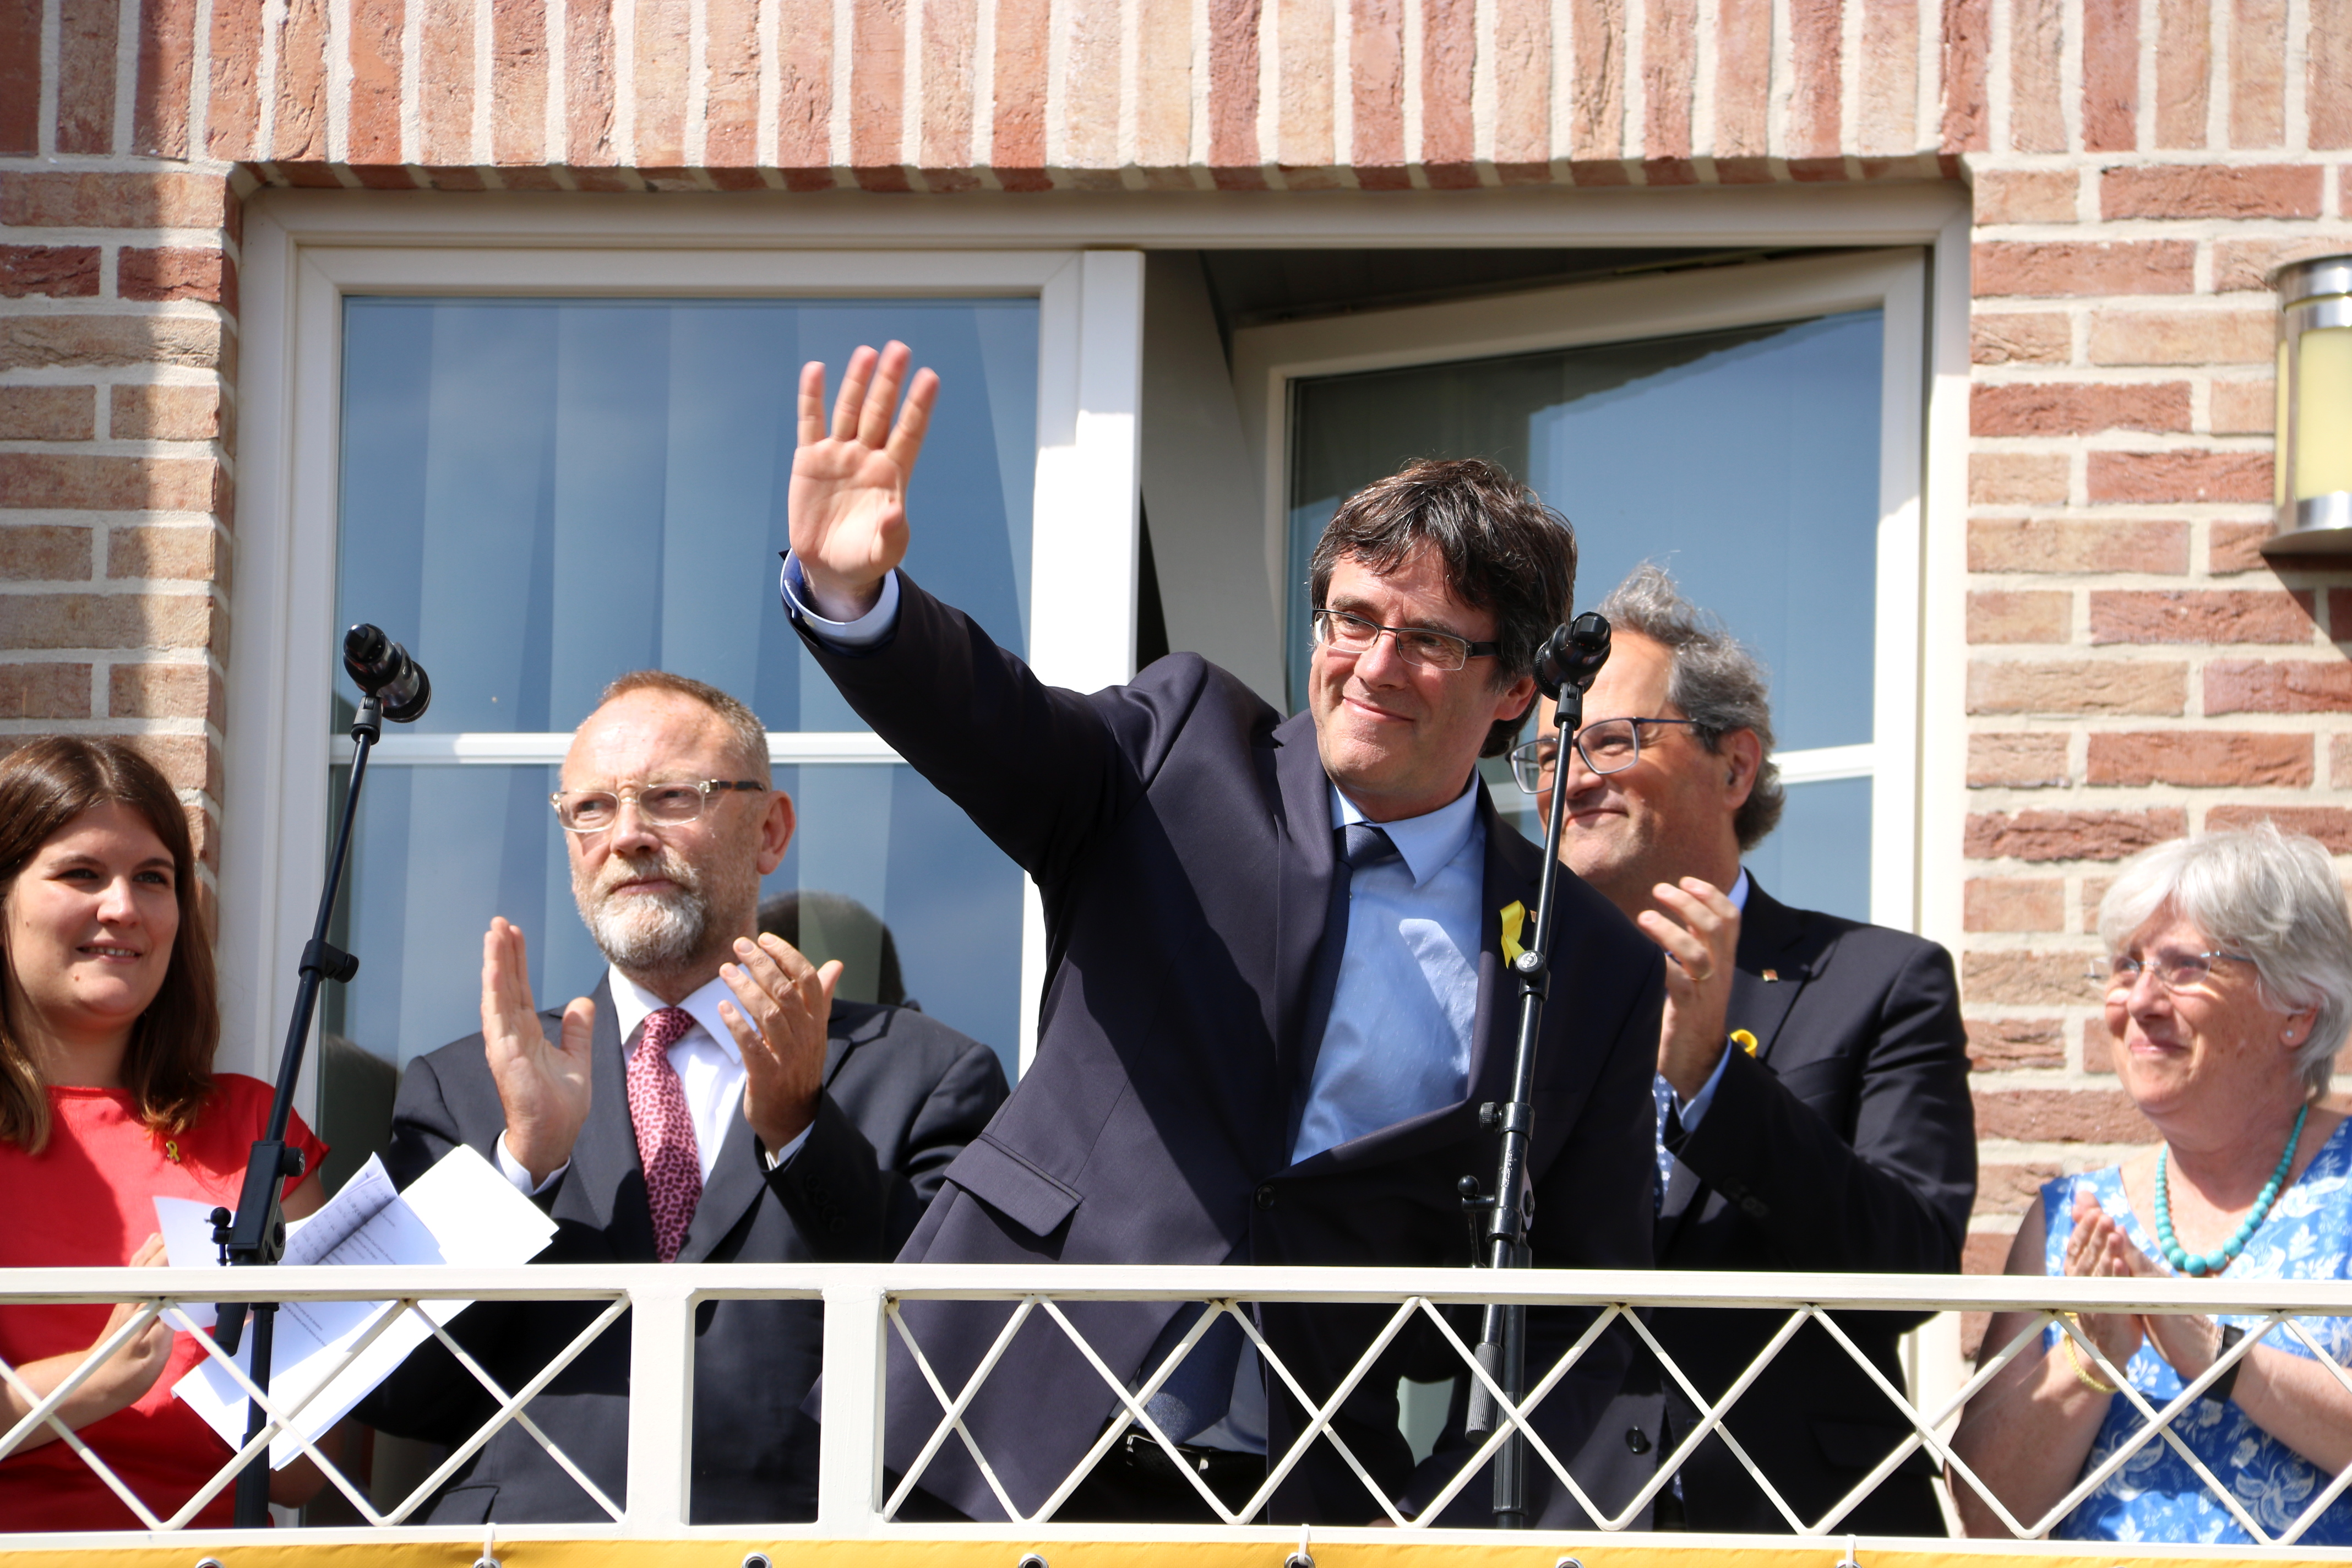 Carles Puigdemont arrives in Waterloo after Germany rejected extraditing him to Spain (by Laura Pous)